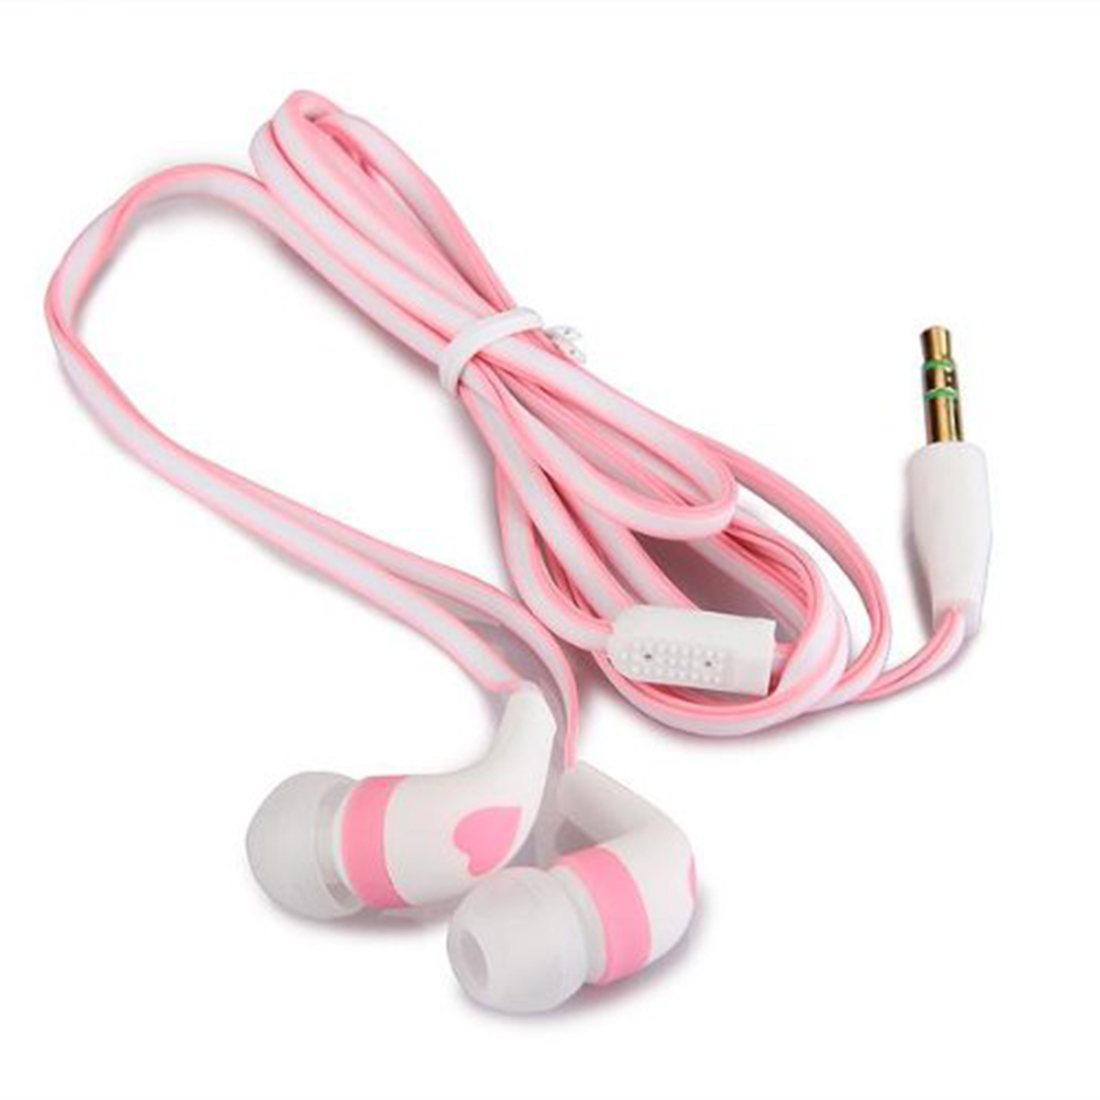 2016 New Wholesale 3.5mm Stereo In-ear Earbud Cute Heart Earphone Headset for iPhone 5 5s White + Pink Retail(China (Mainland))